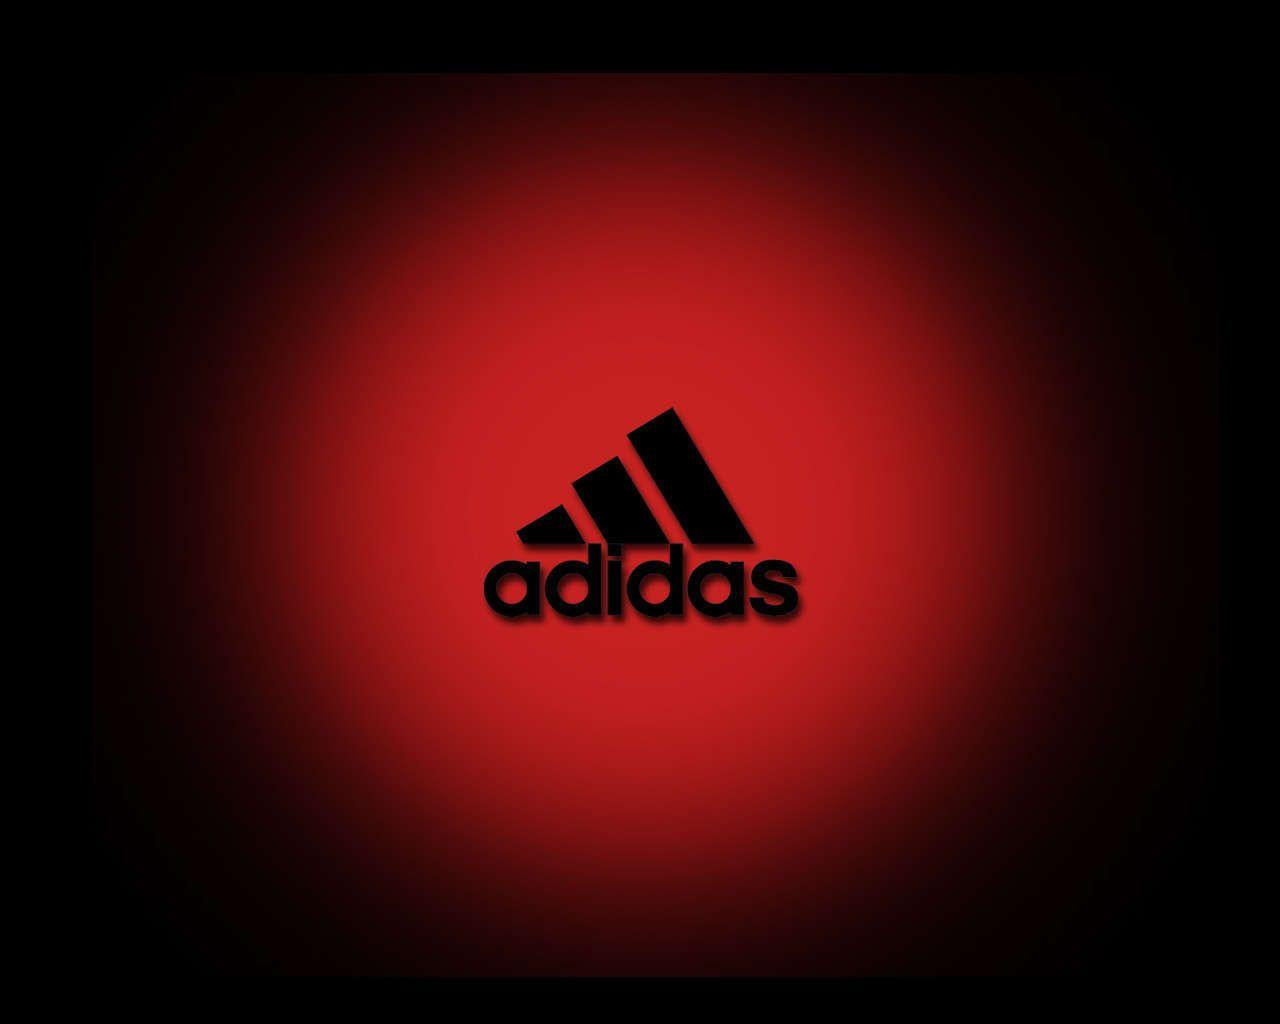 Adidas Logo Wallpapers 2016 Wallpaper Cave